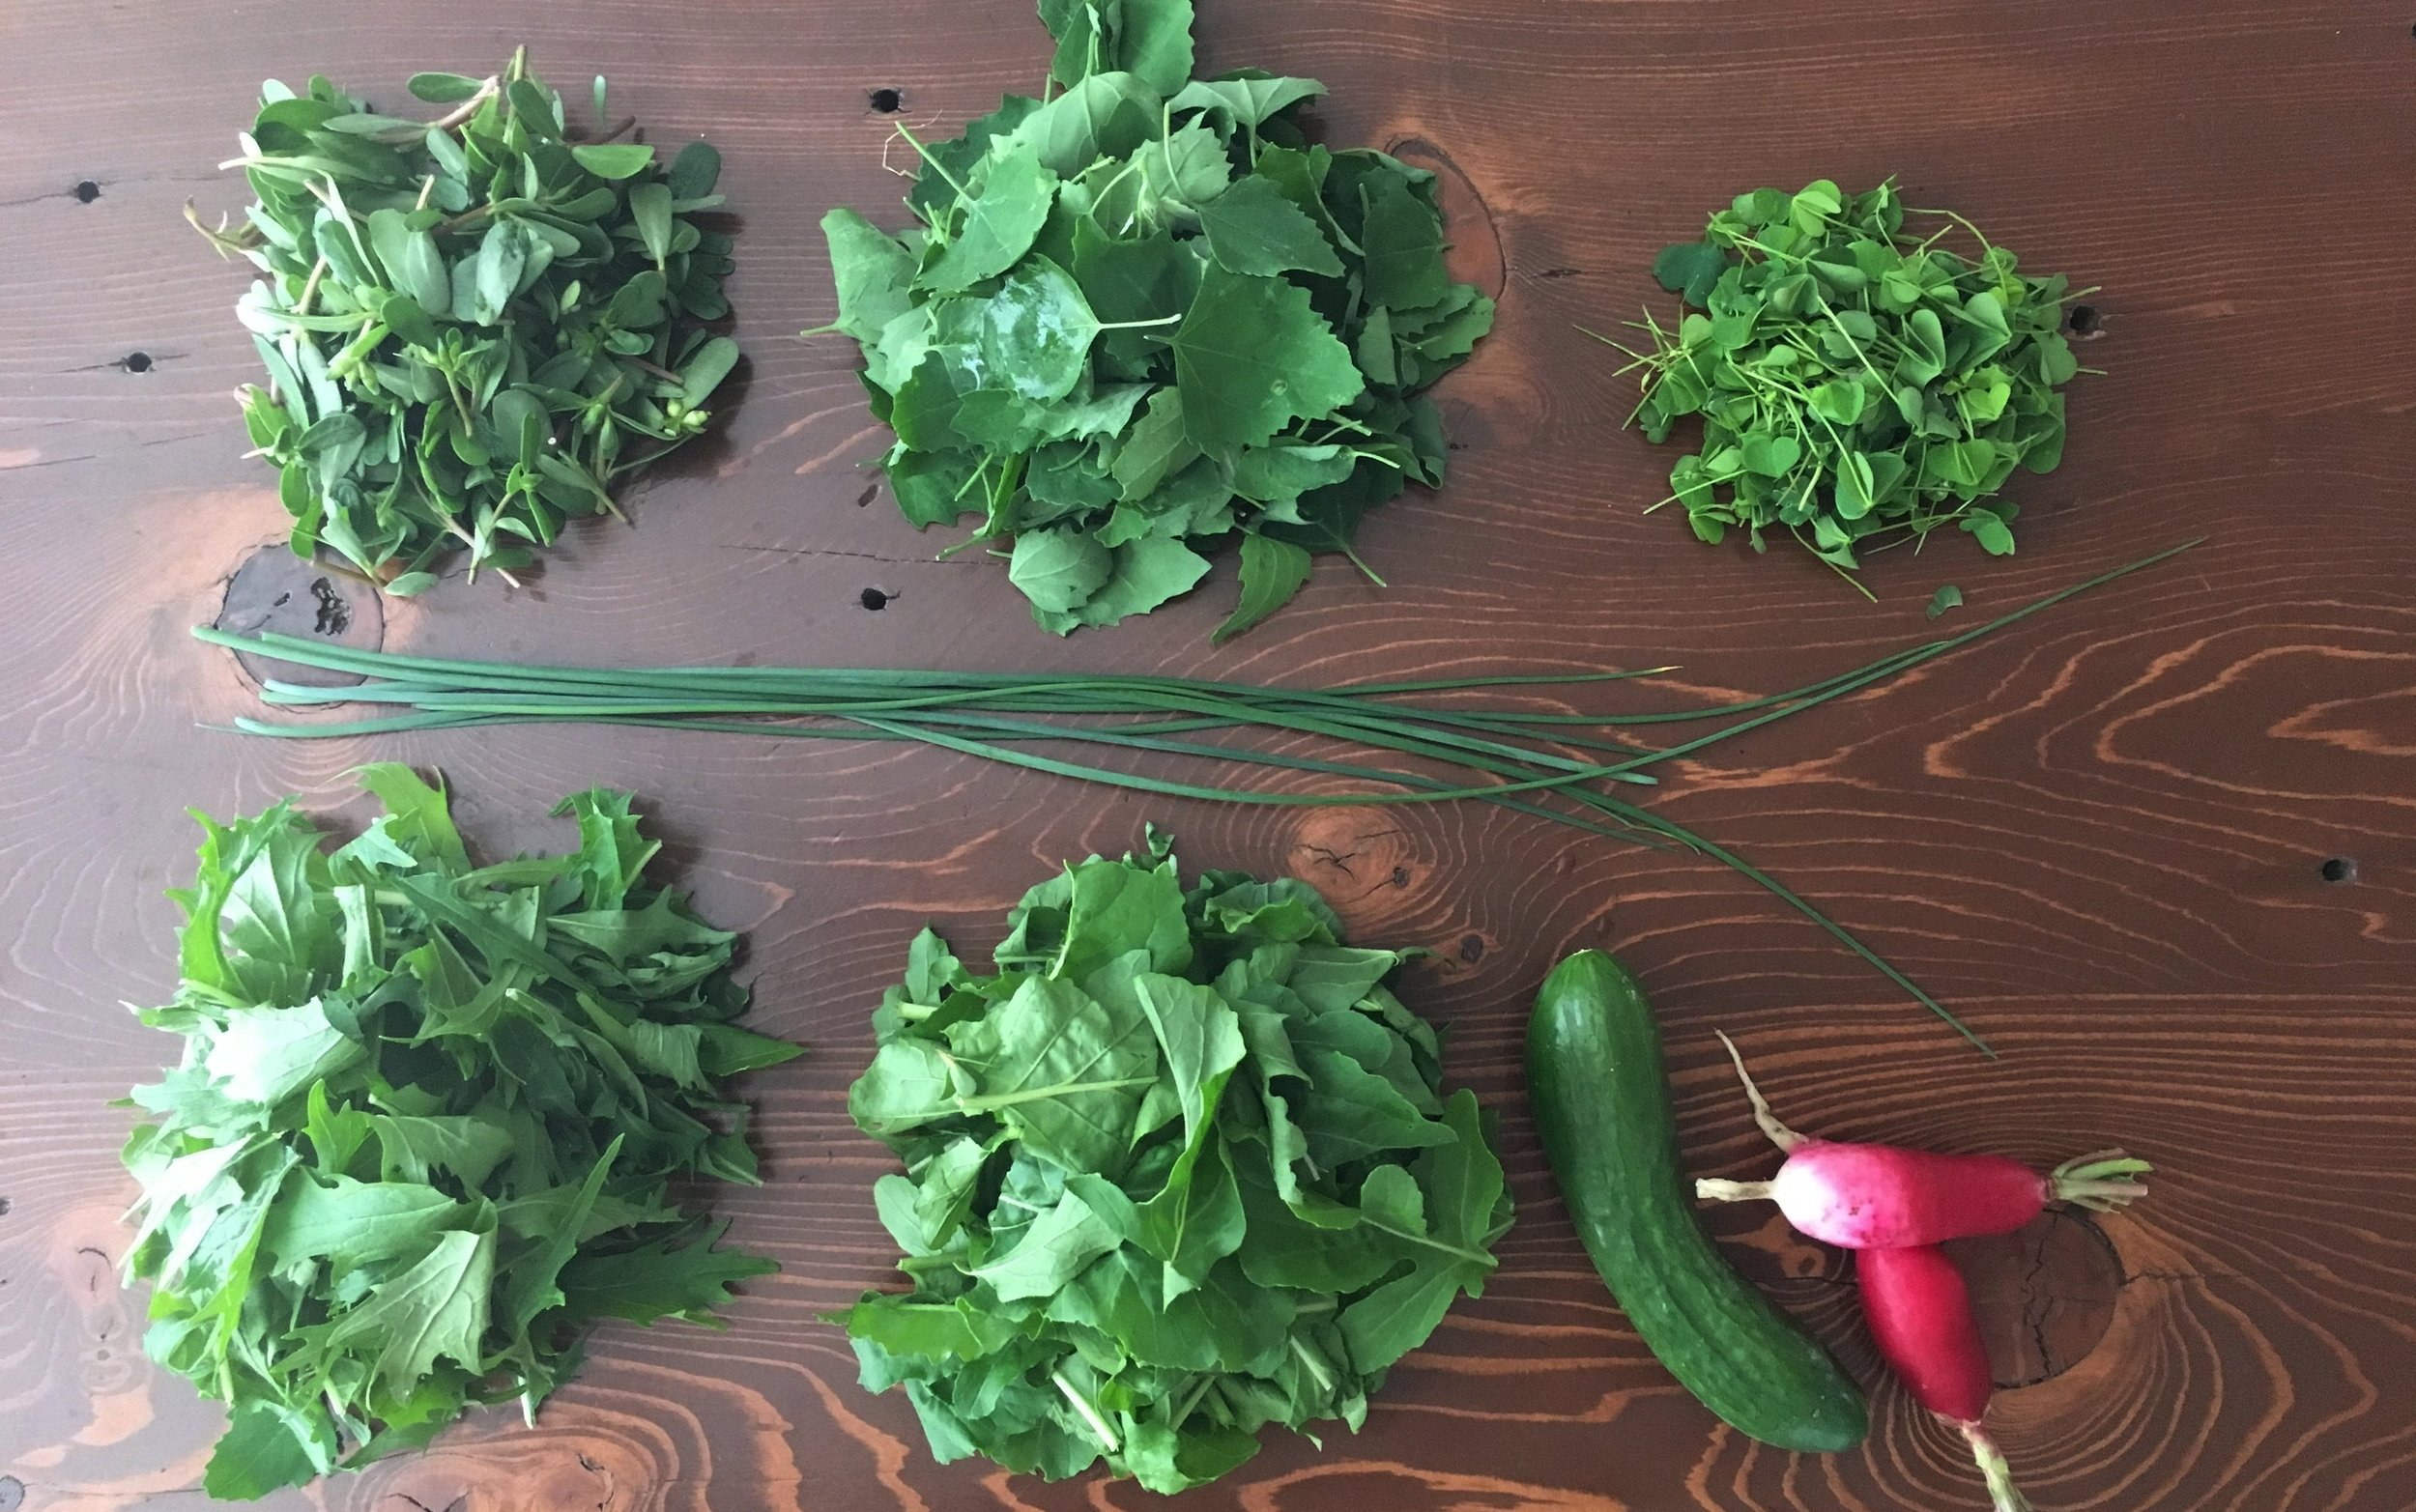 Garden fresh ingredients! Top row are foraged greens - purslane, lamb's quarters & sour grass (left to right). The two greens in the bottom row are mizuna and arugula (left to right).